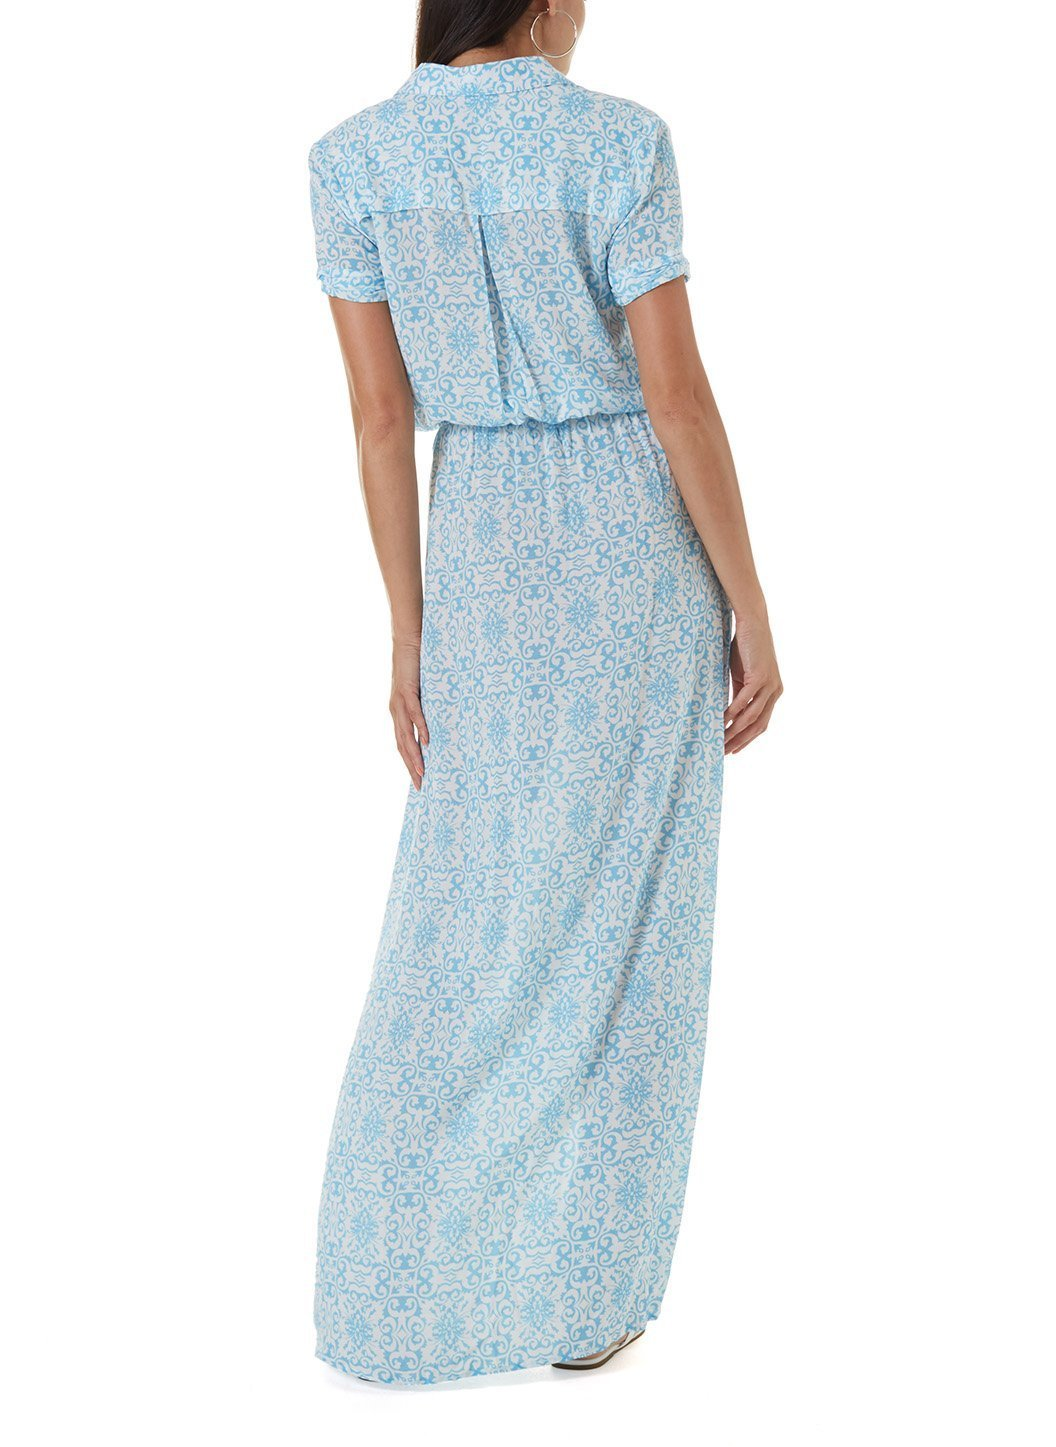 naomi amalfi celeste long shirt dress